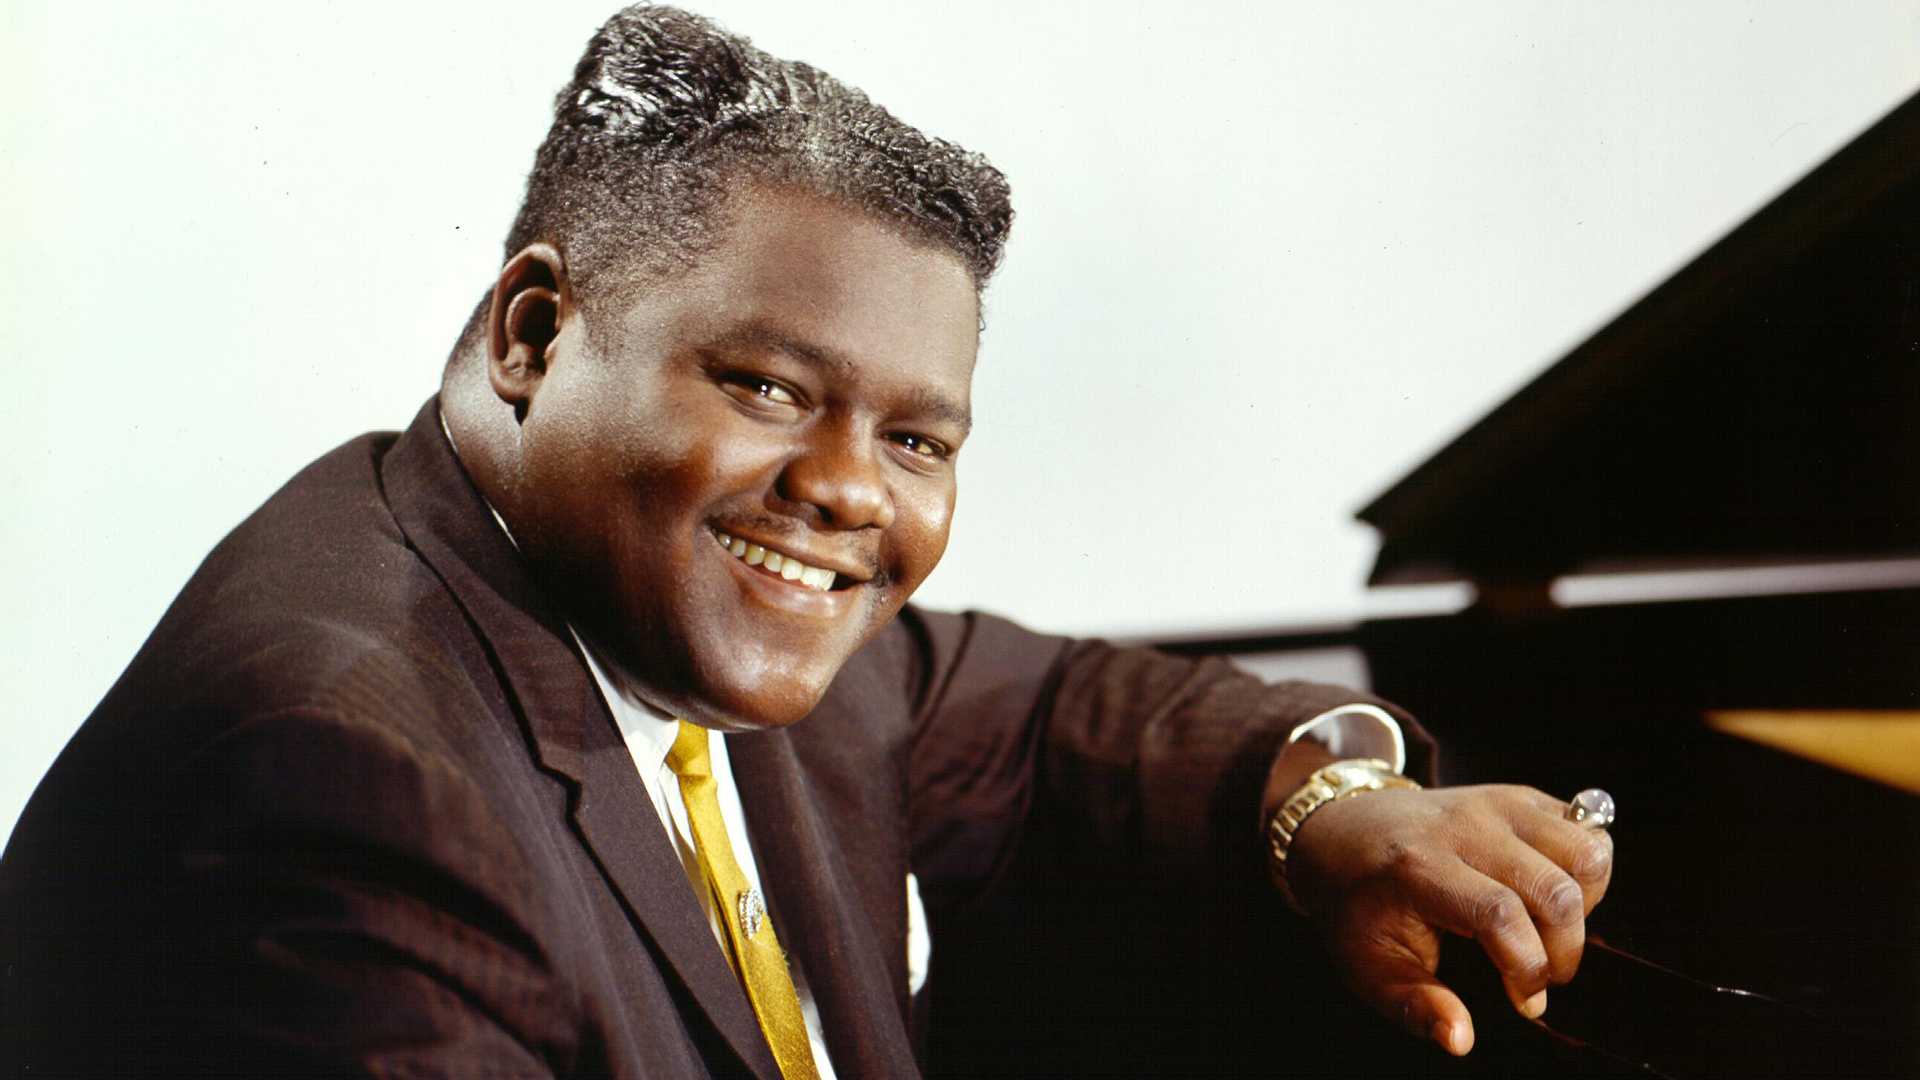 Fats Domino, uno de los últimos reyes del rock and roll nos dice adiós